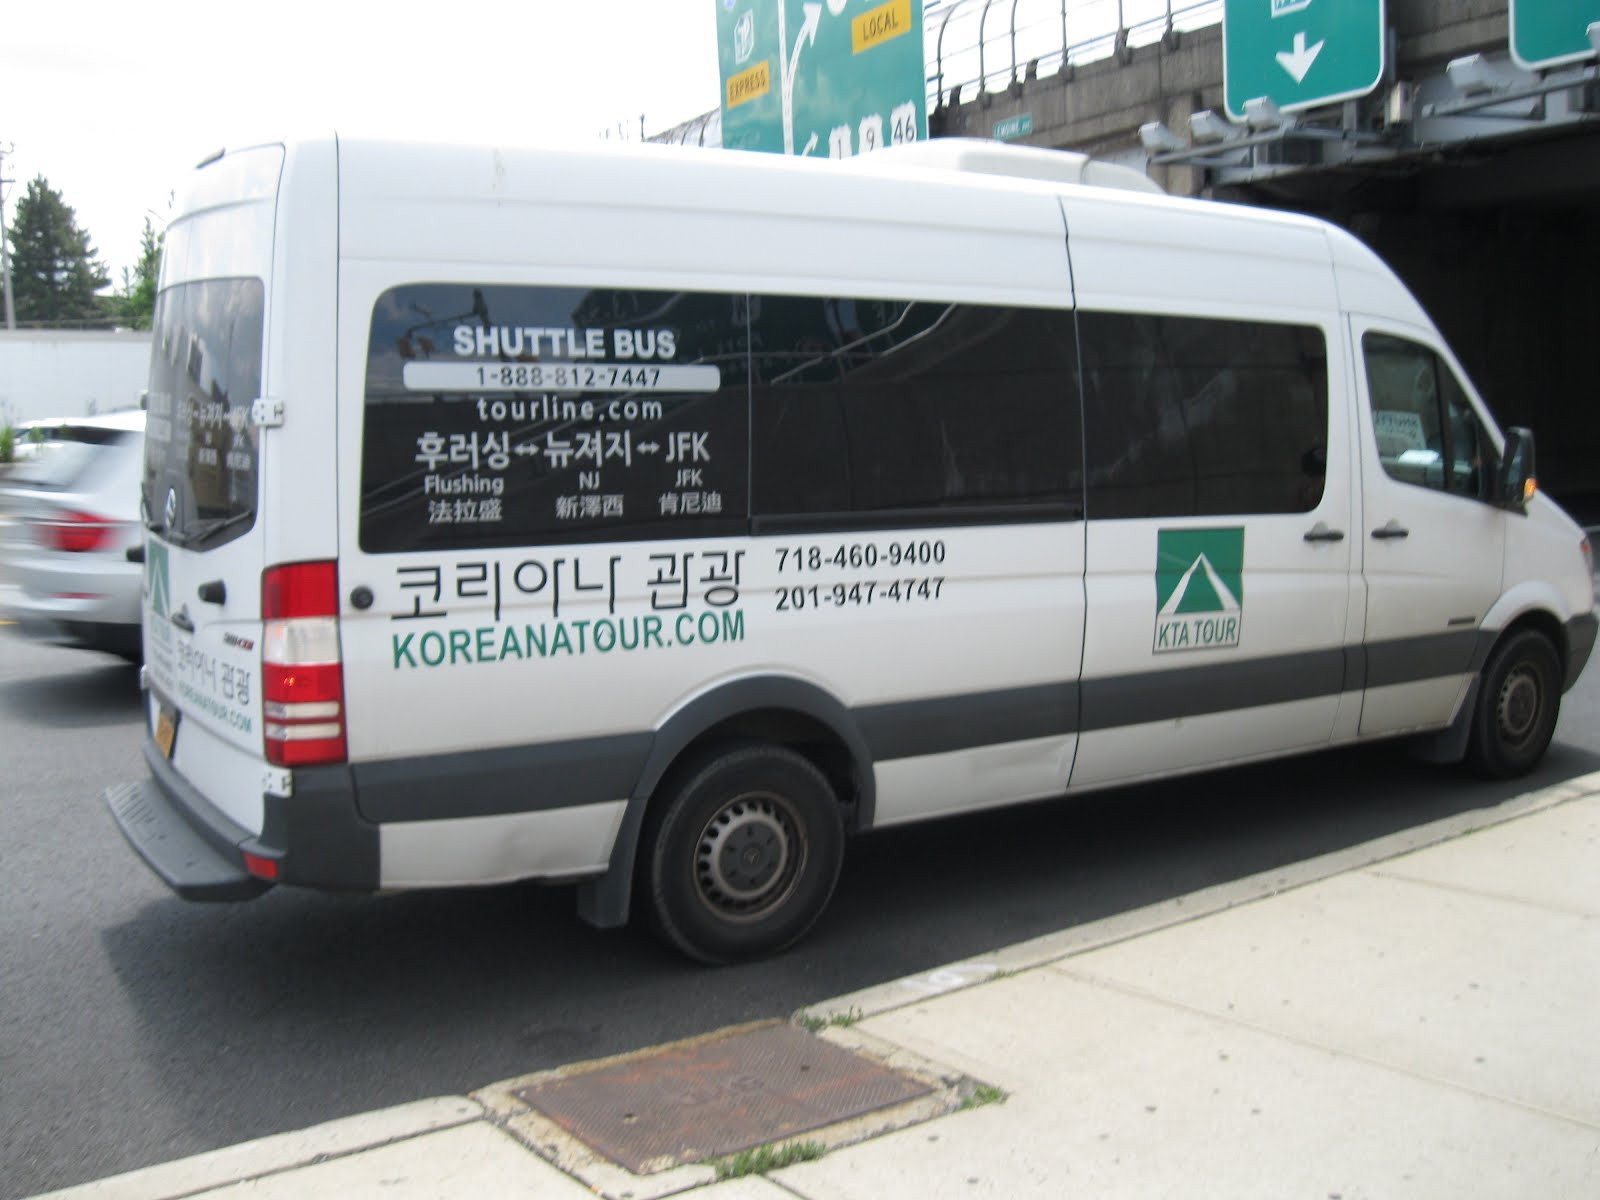 Cap'n Transit Rides Again: New van service connects Queens and New